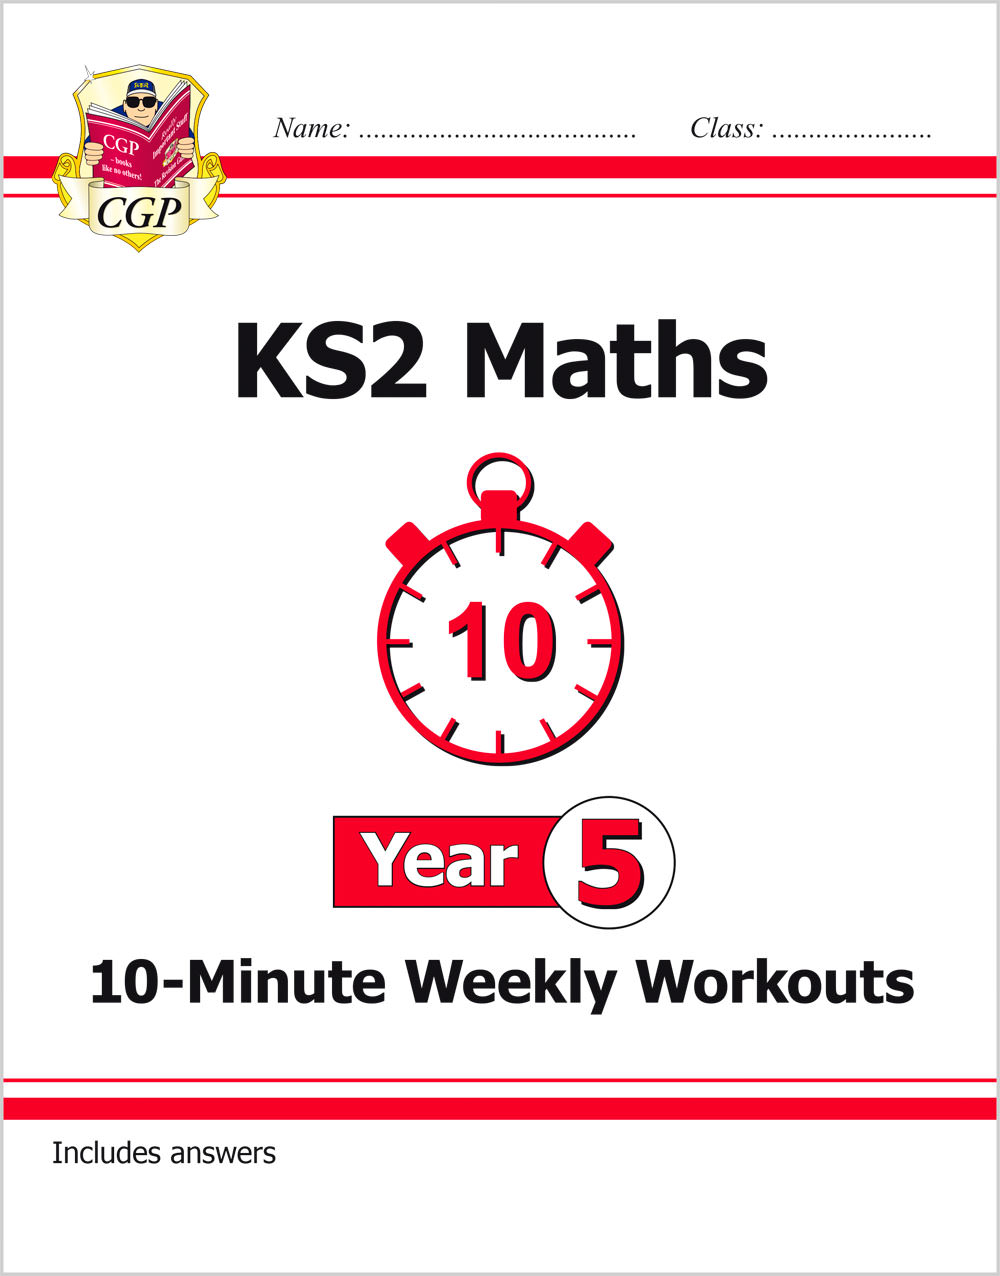 M5XW21 - New KS2 Maths 10-Minute Weekly Workouts - Year 5